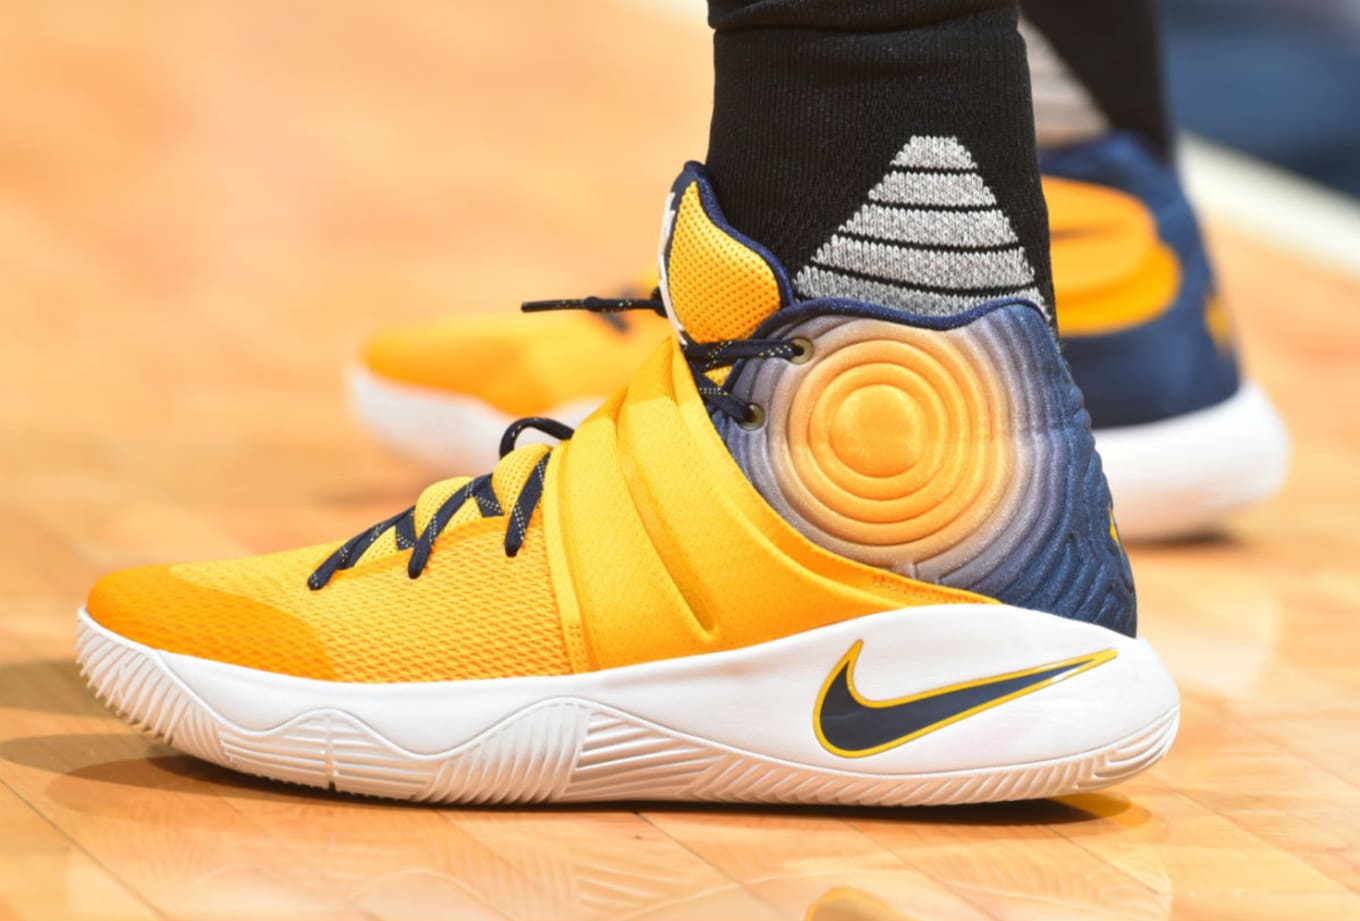 low priced 70d2d 17707 Kyrie Irving Wearing a Navy Yellow Dye Graphic Nike Kyrie 2 PE (1)